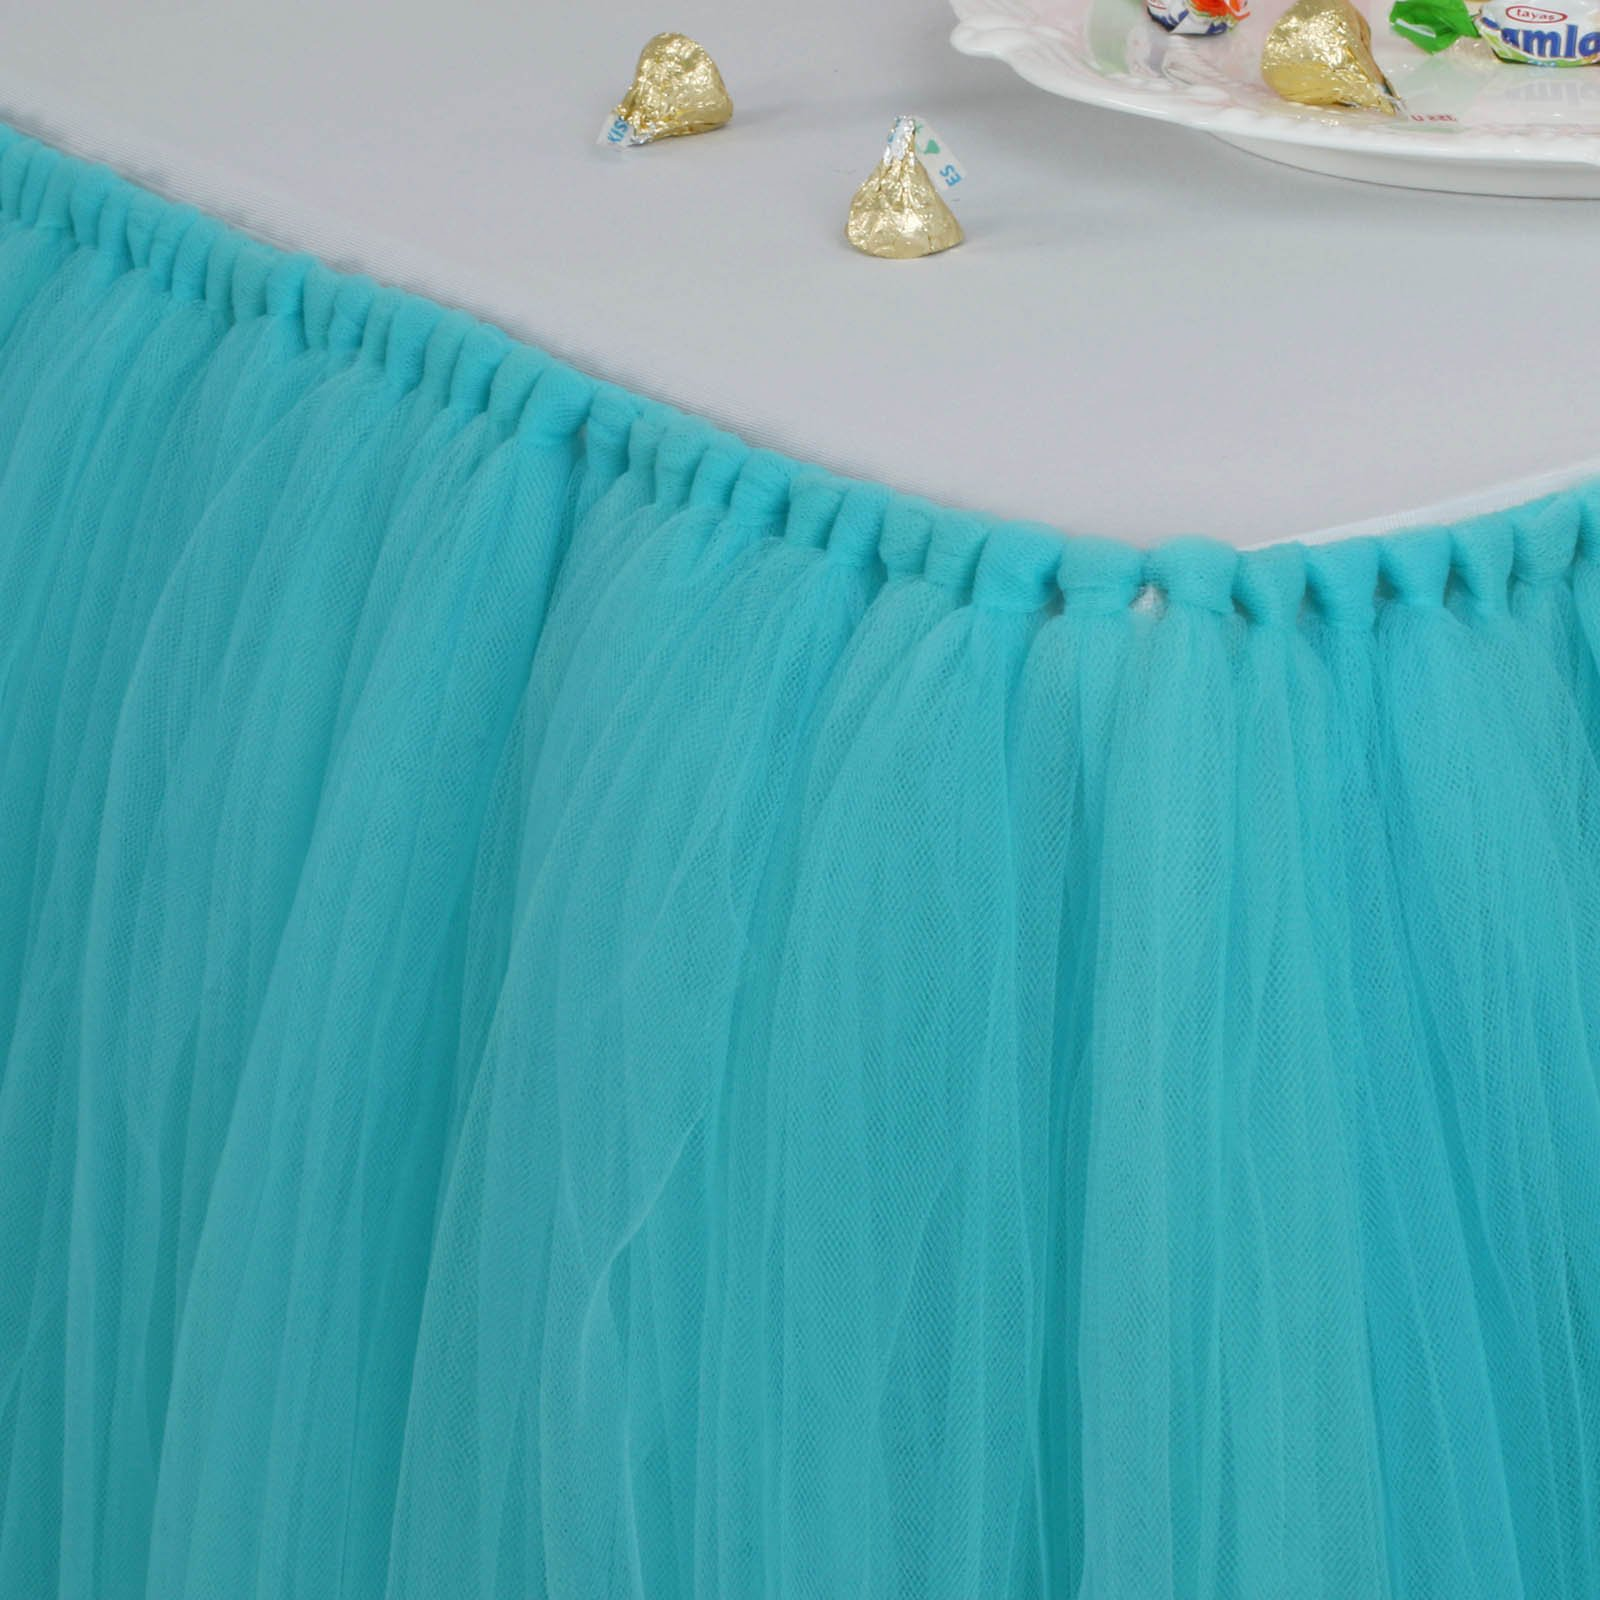 Fivejorya 3.3ft Turquoise Blue Tulle Table Skirt Queen Wonderland Tablecloth Skirting Tutu Tablecloth Tableware for Christmas Wedding Baby Shower Birthday Party Cake Dessert Table Decor by Fivejorya (Image #2)